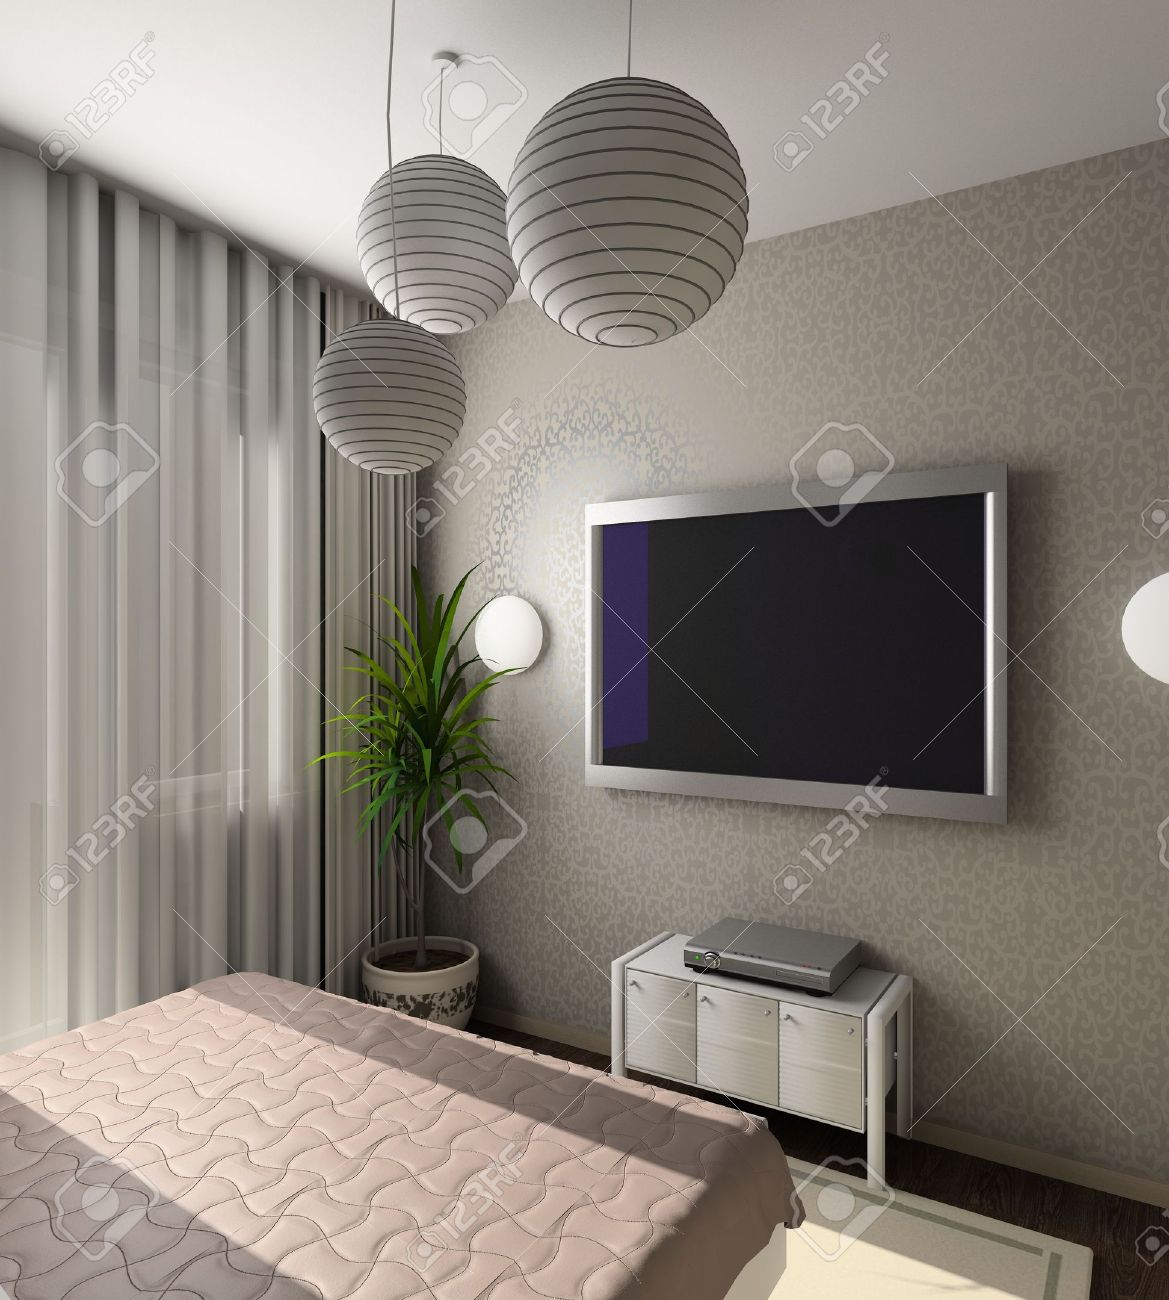 moderna camera da letto con tv ? foto stock © felixtm #3163127 ...